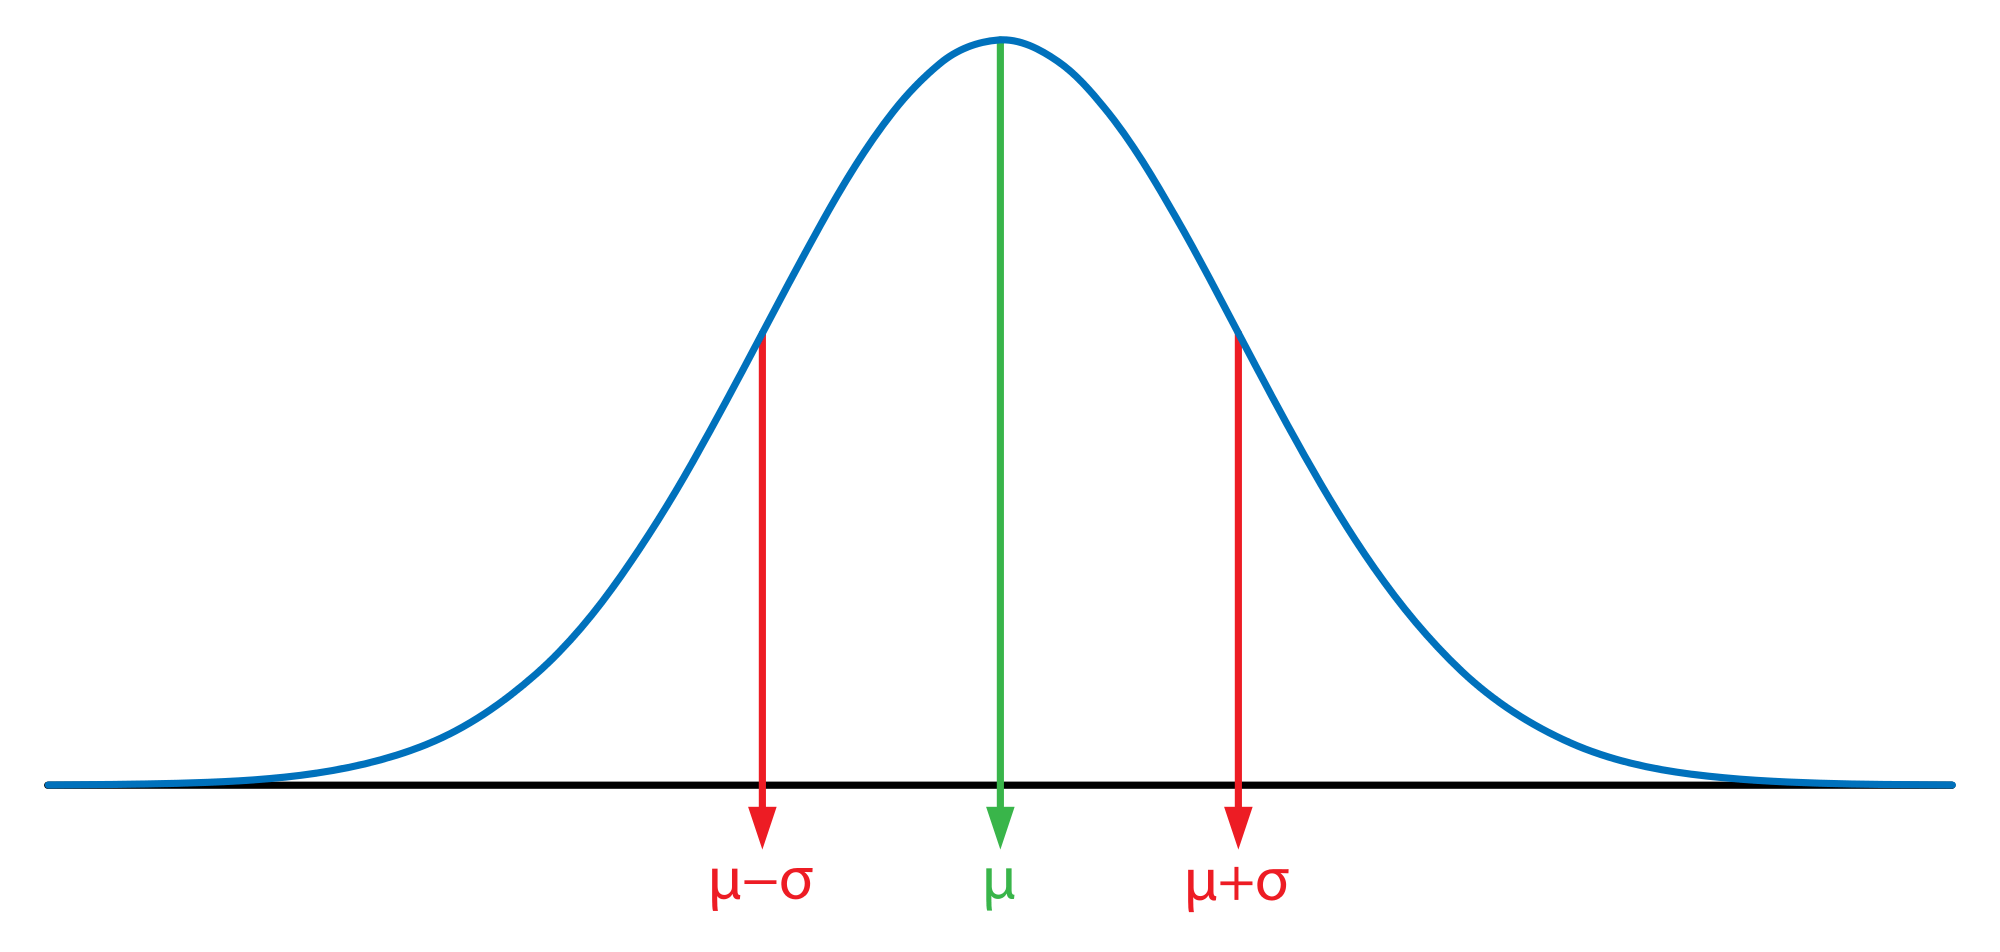 How Normal Is The Normal Distribution